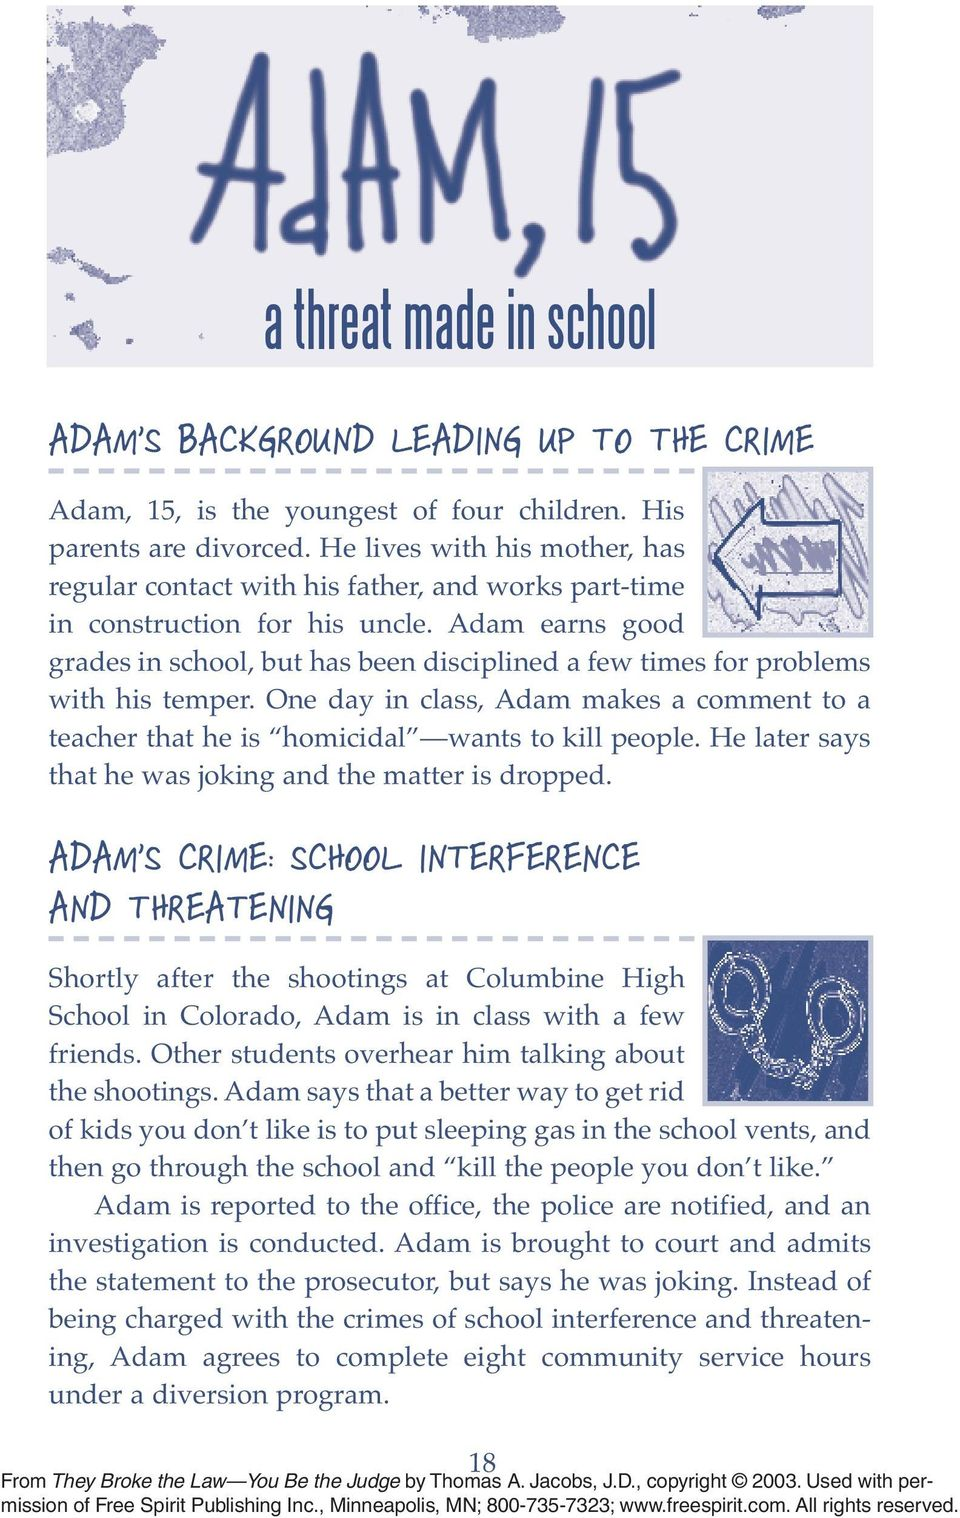 Adam earns good grades in school, but has been disciplined a few times for problems with his temper. One day in class, Adam makes a comment to a teacher that he is homicidal wants to kill people.